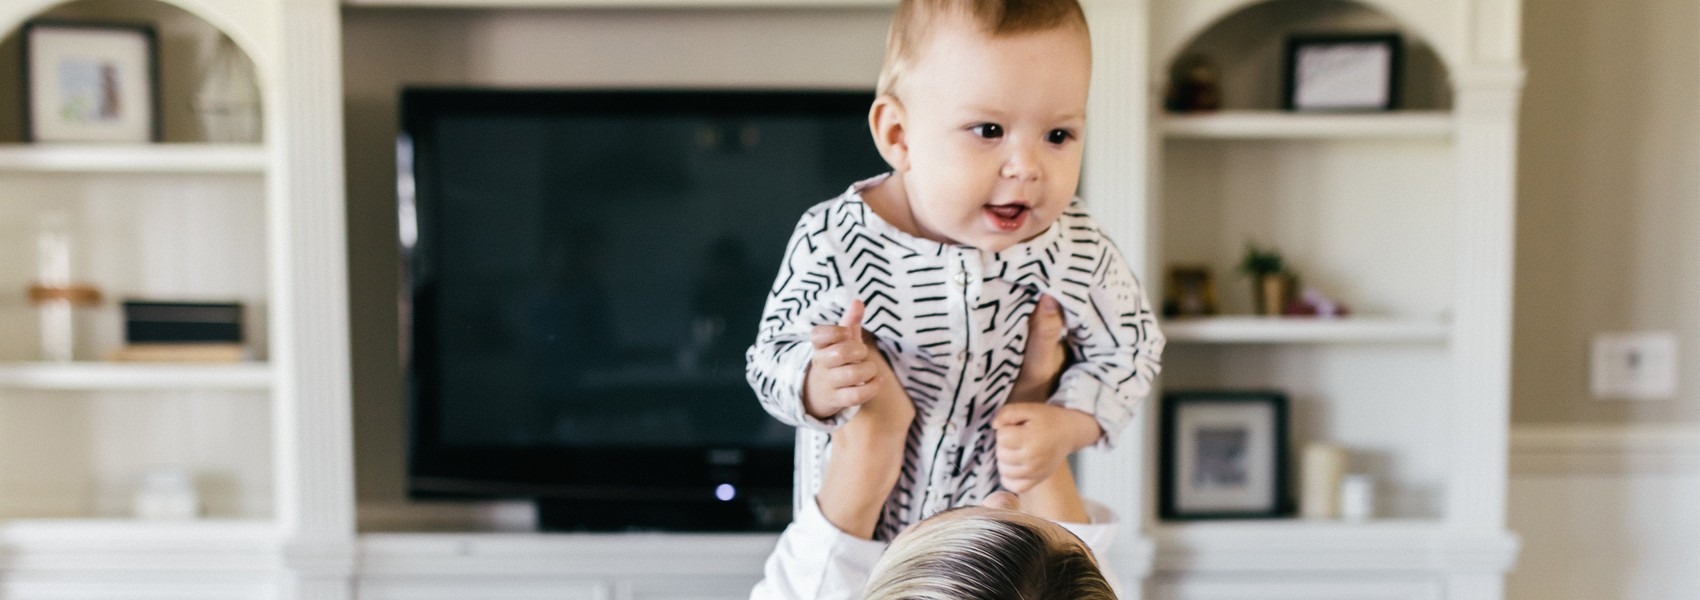 The Do's and Don'ts of Caring for Your Baby's Skin